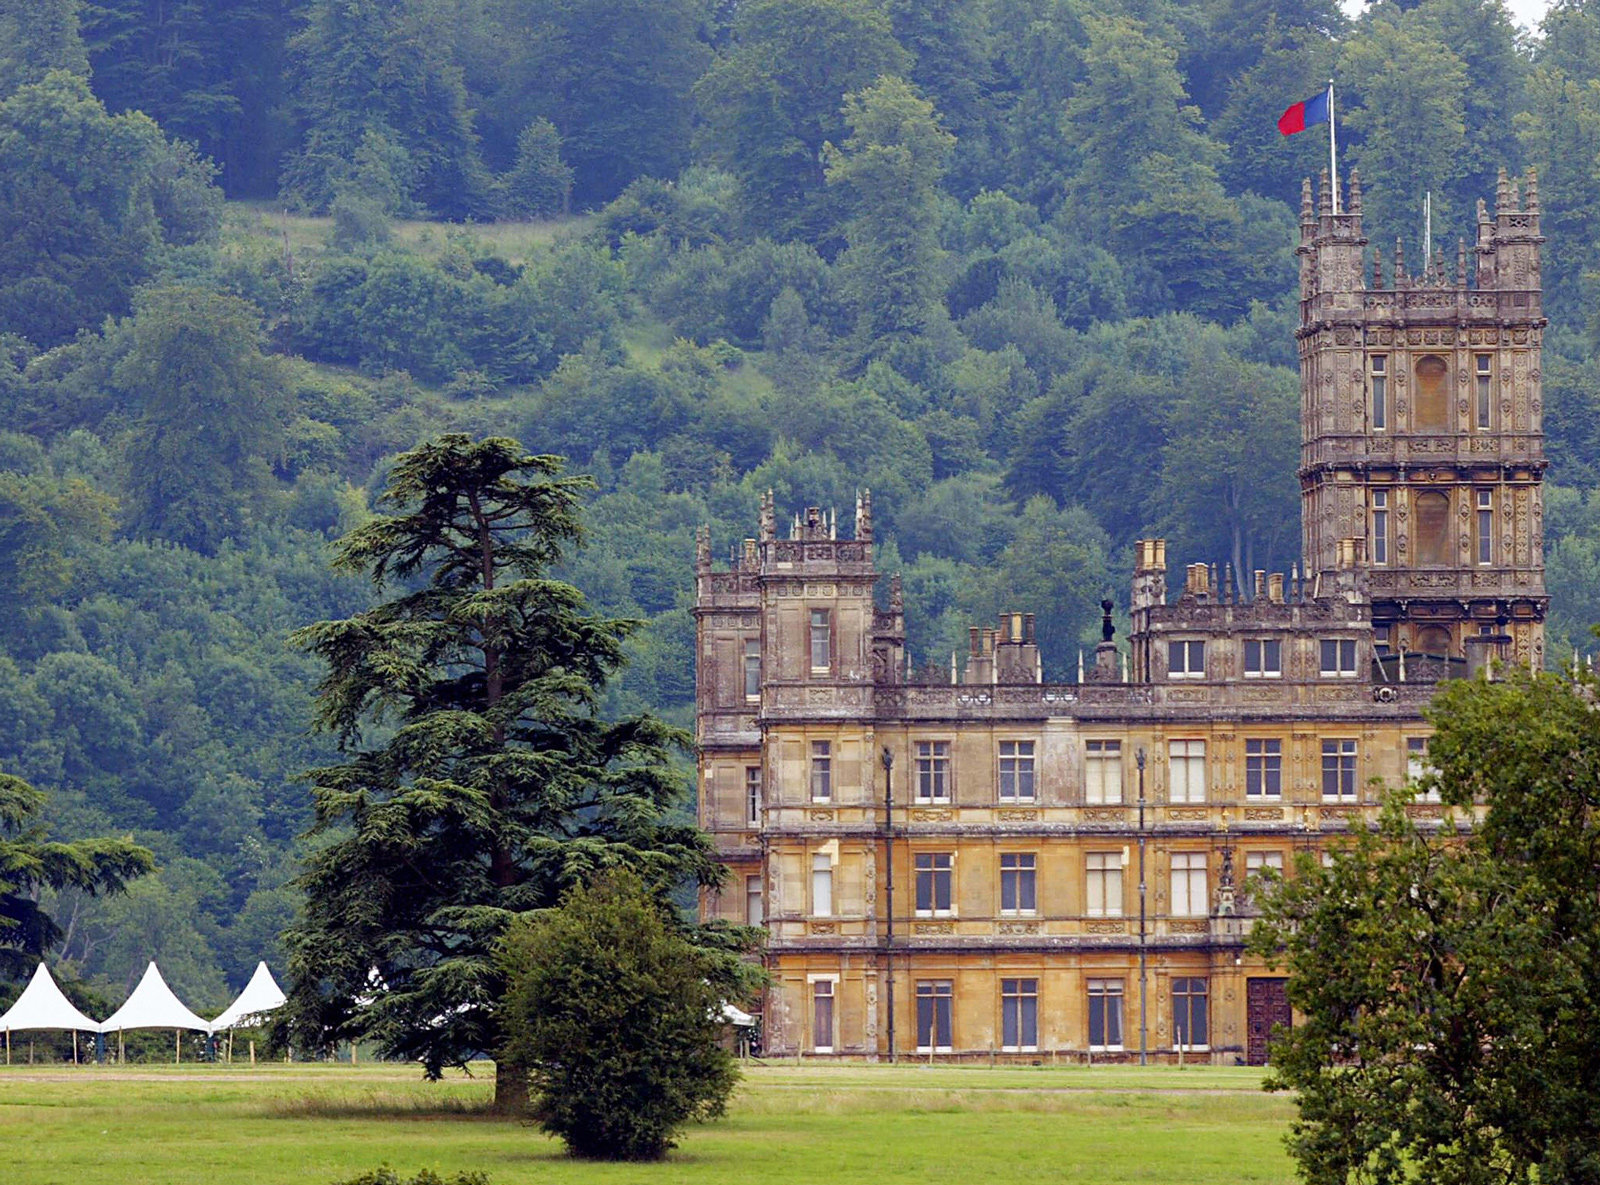 TV Show Destination - Highclere Castle from Downtown Abbey